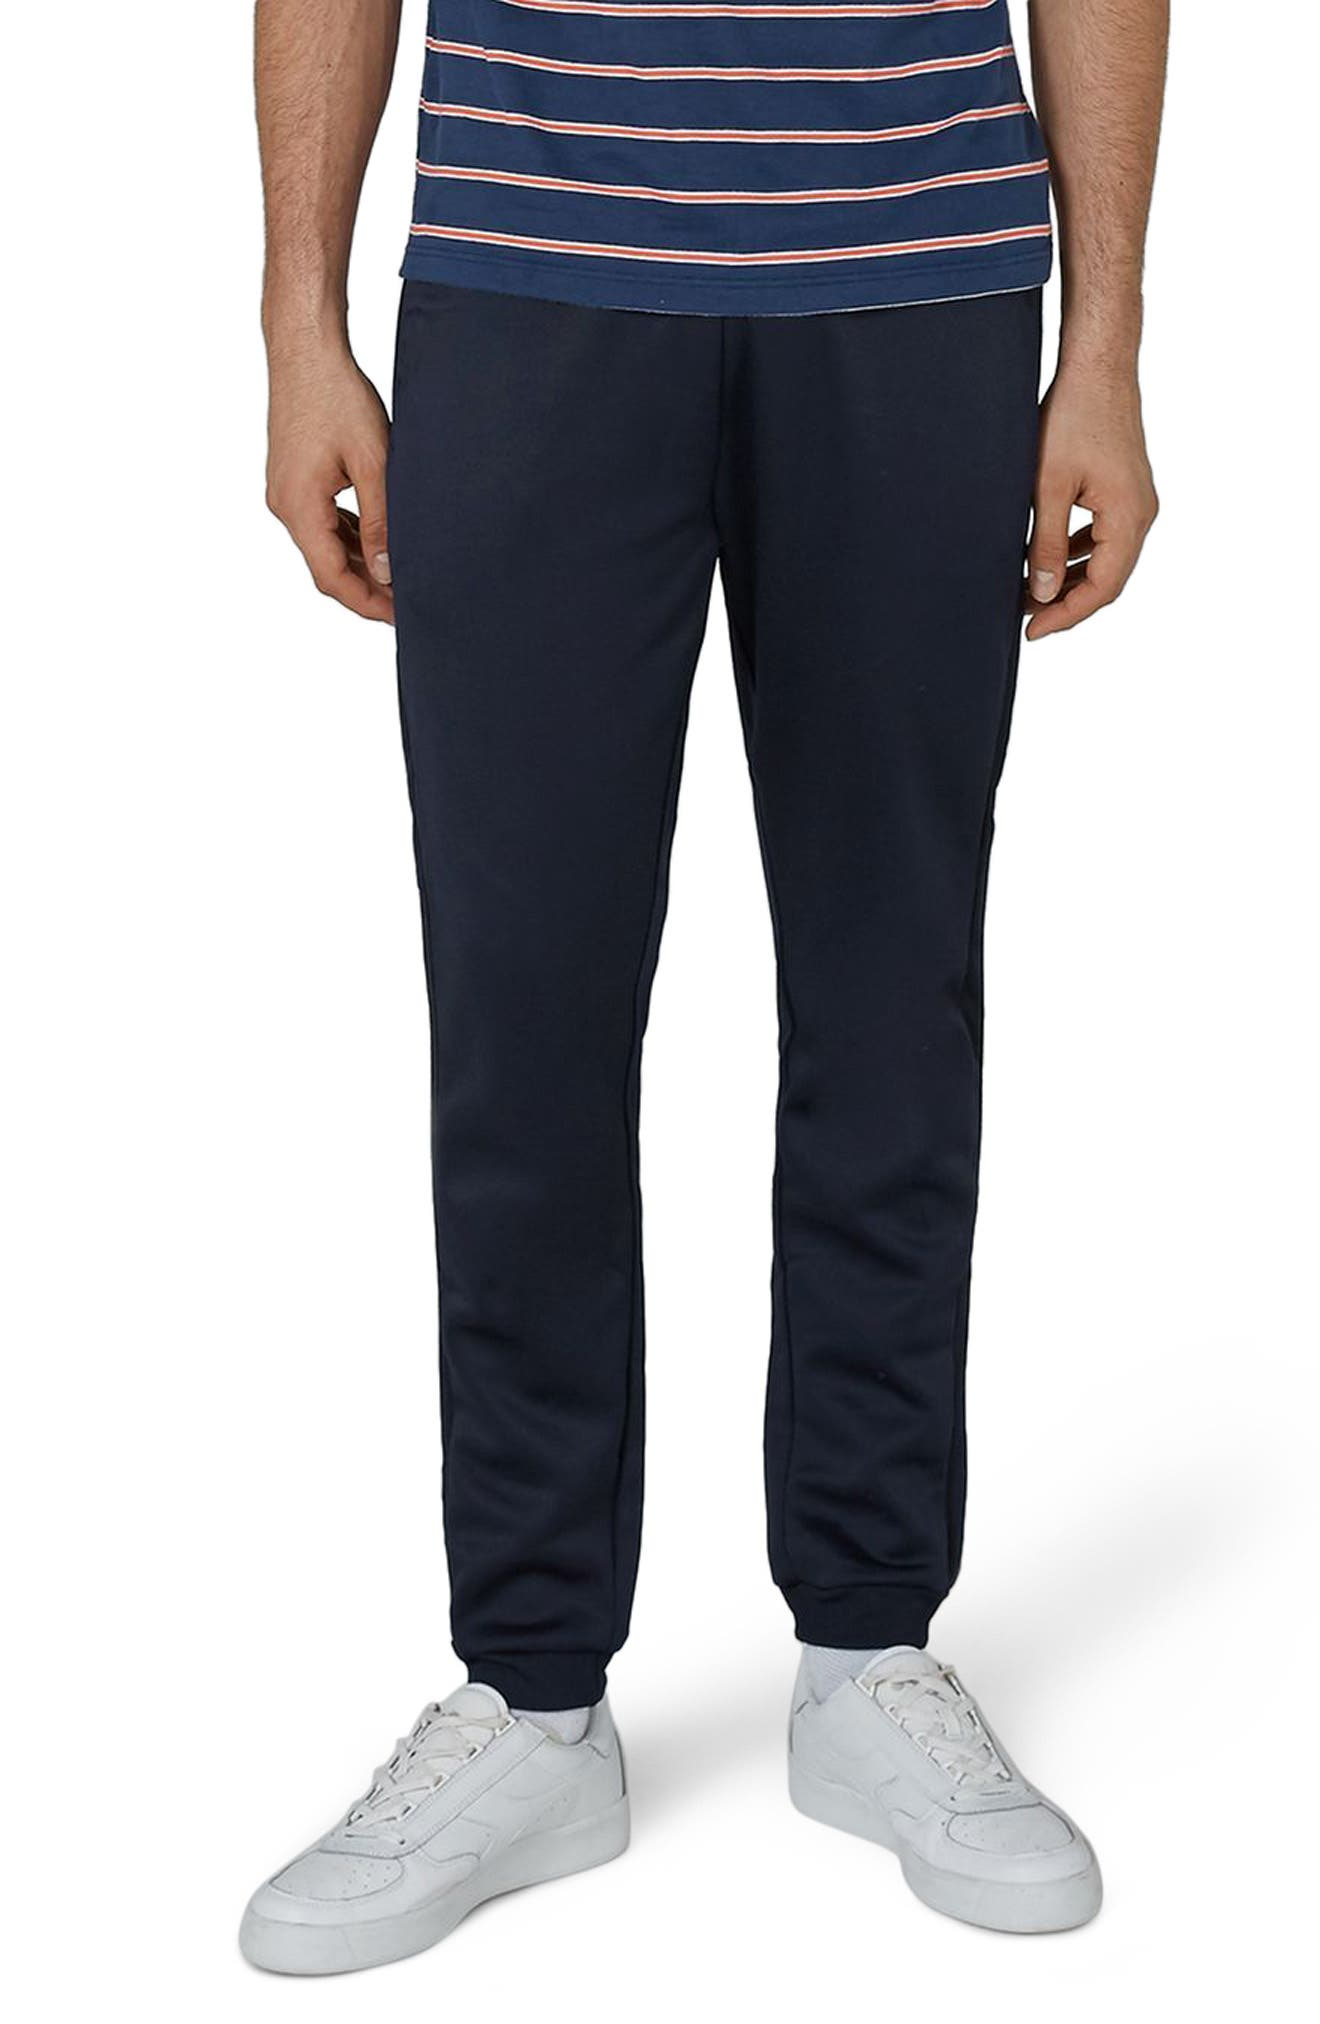 Track Sweatpants,                         Main,                         color, Dark Blue